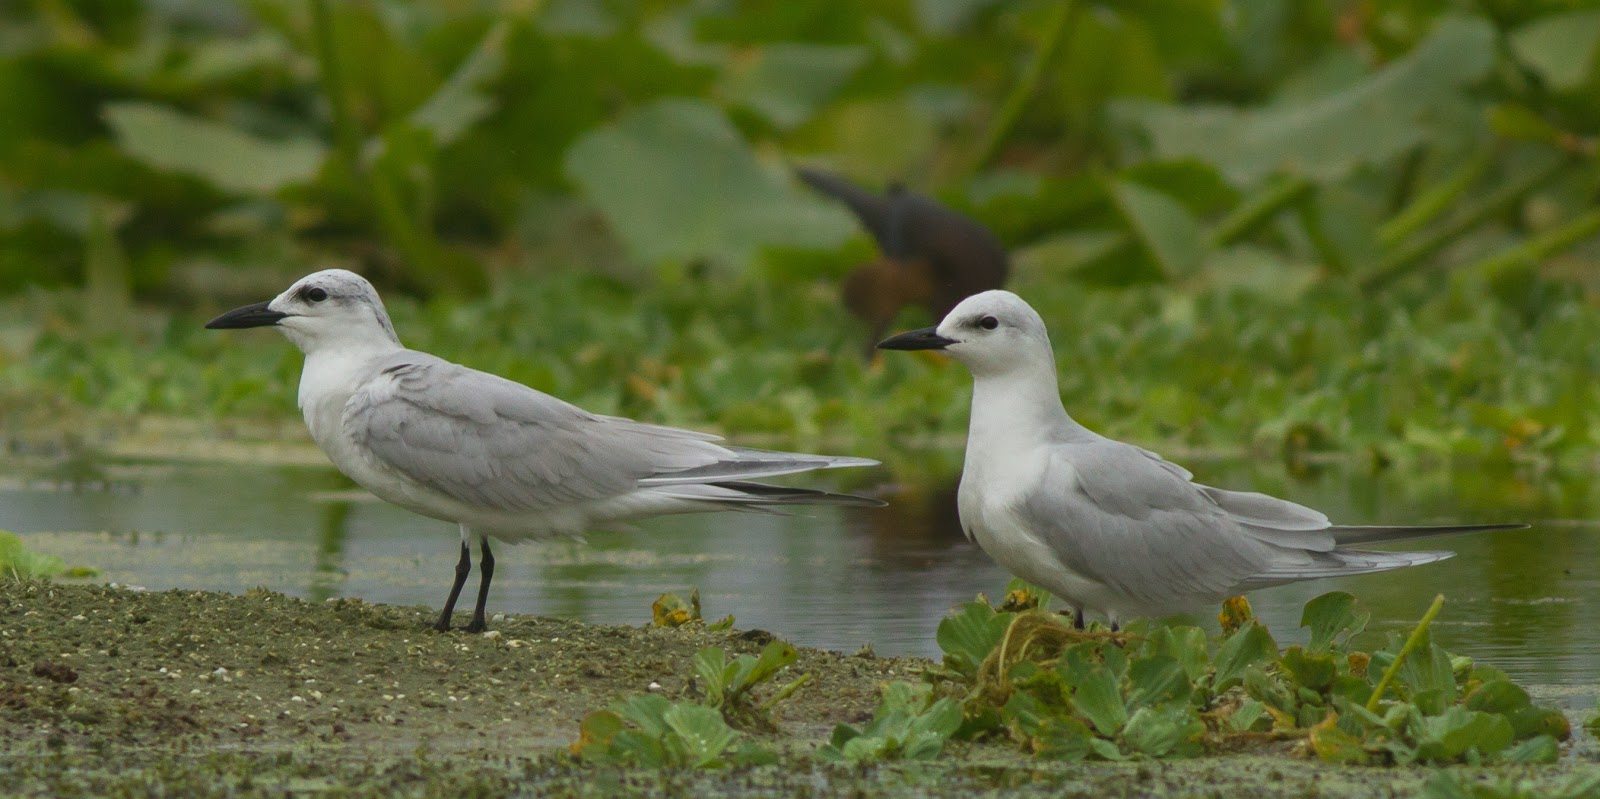 Gull-billed Terns at Orlando Wetlands Park, 11/24/2017